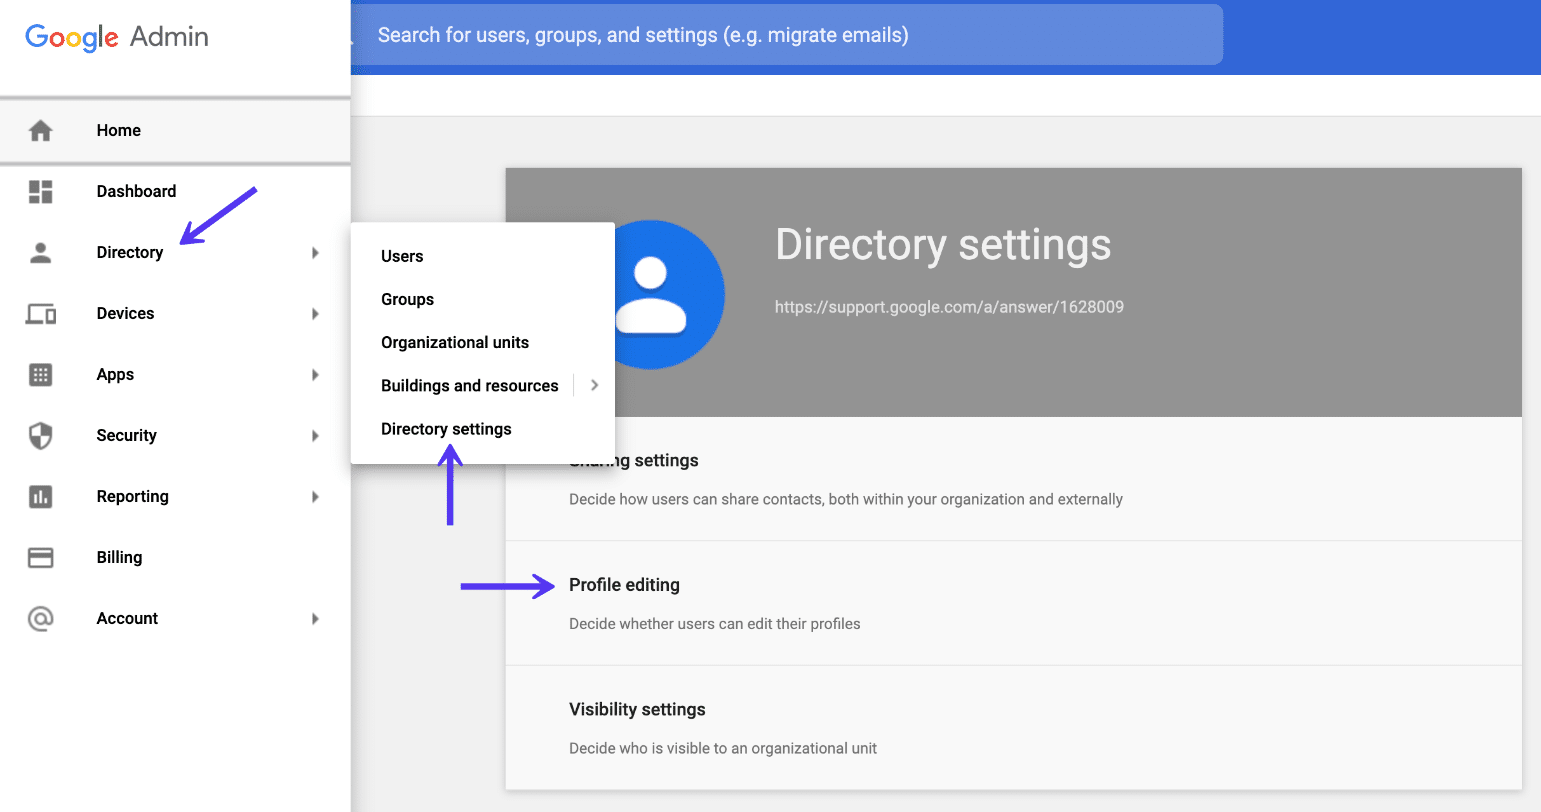 G Suite directory profile editing rights